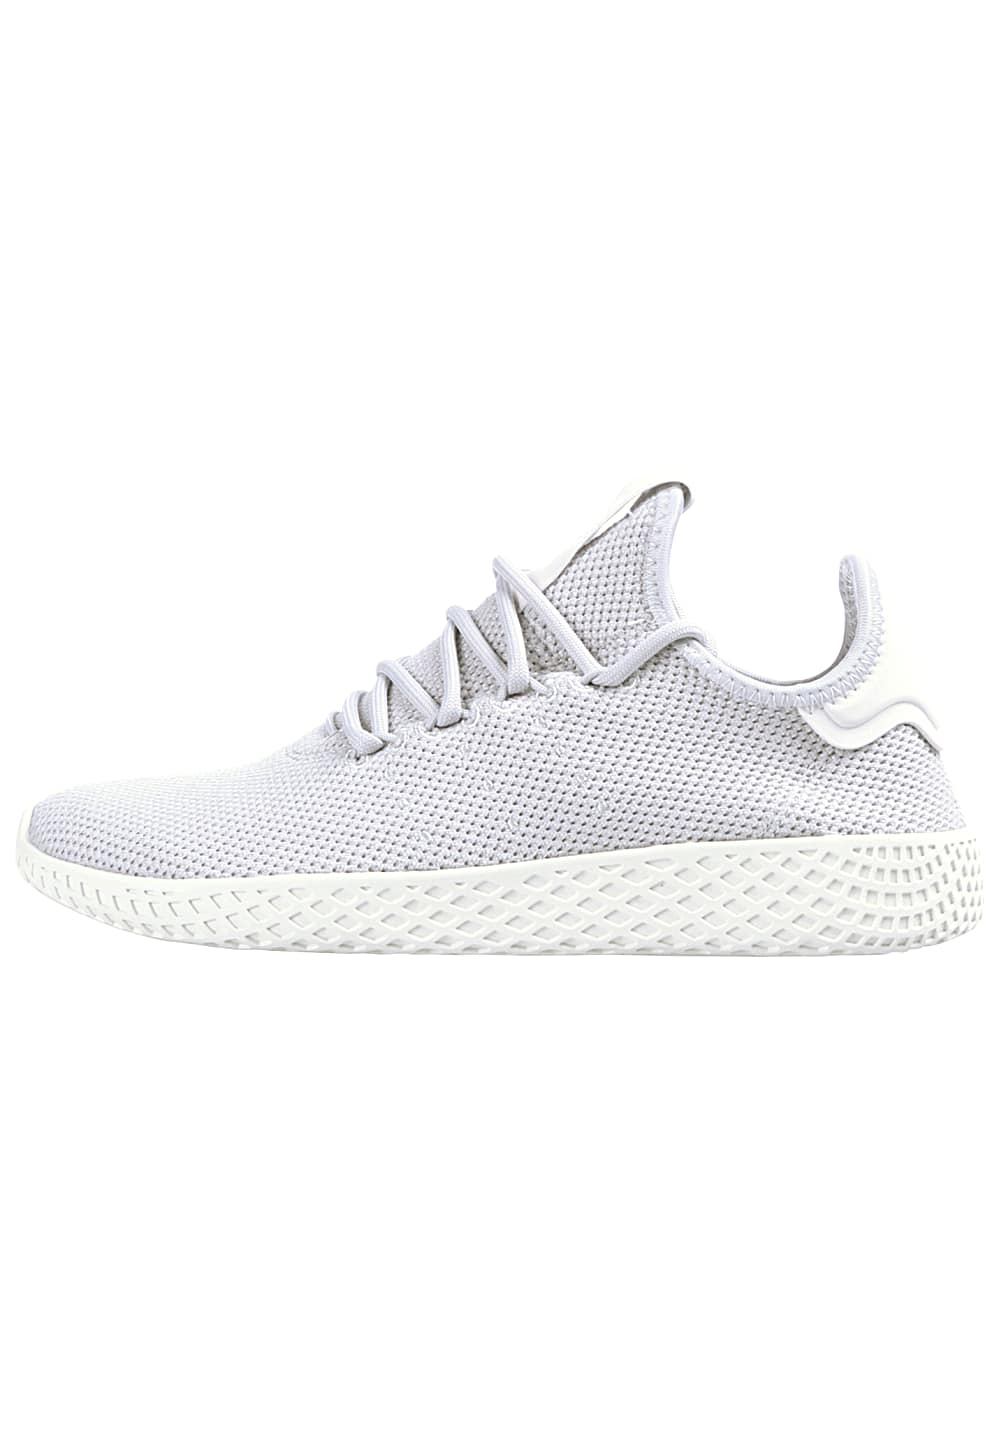 Hu Grau Tennis Pharrell Originals Williams Adidas Für Sneaker Damen dCxBeroW